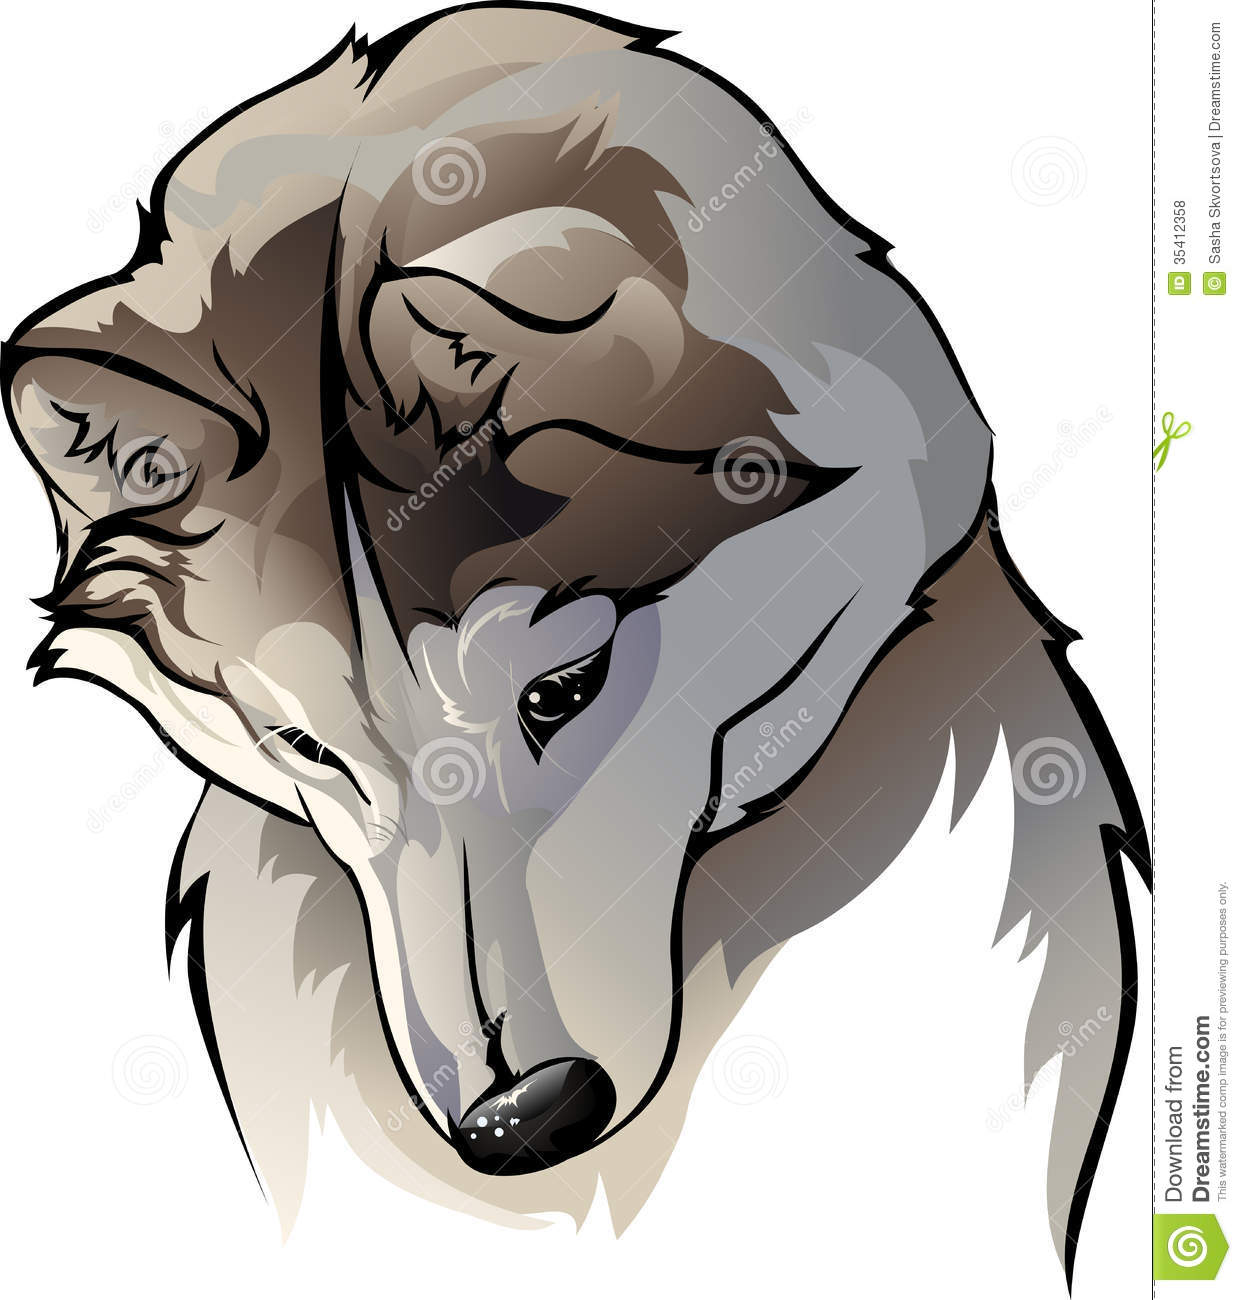 Shy Wolf Royalty Free Stock Photos - Image: 35412358